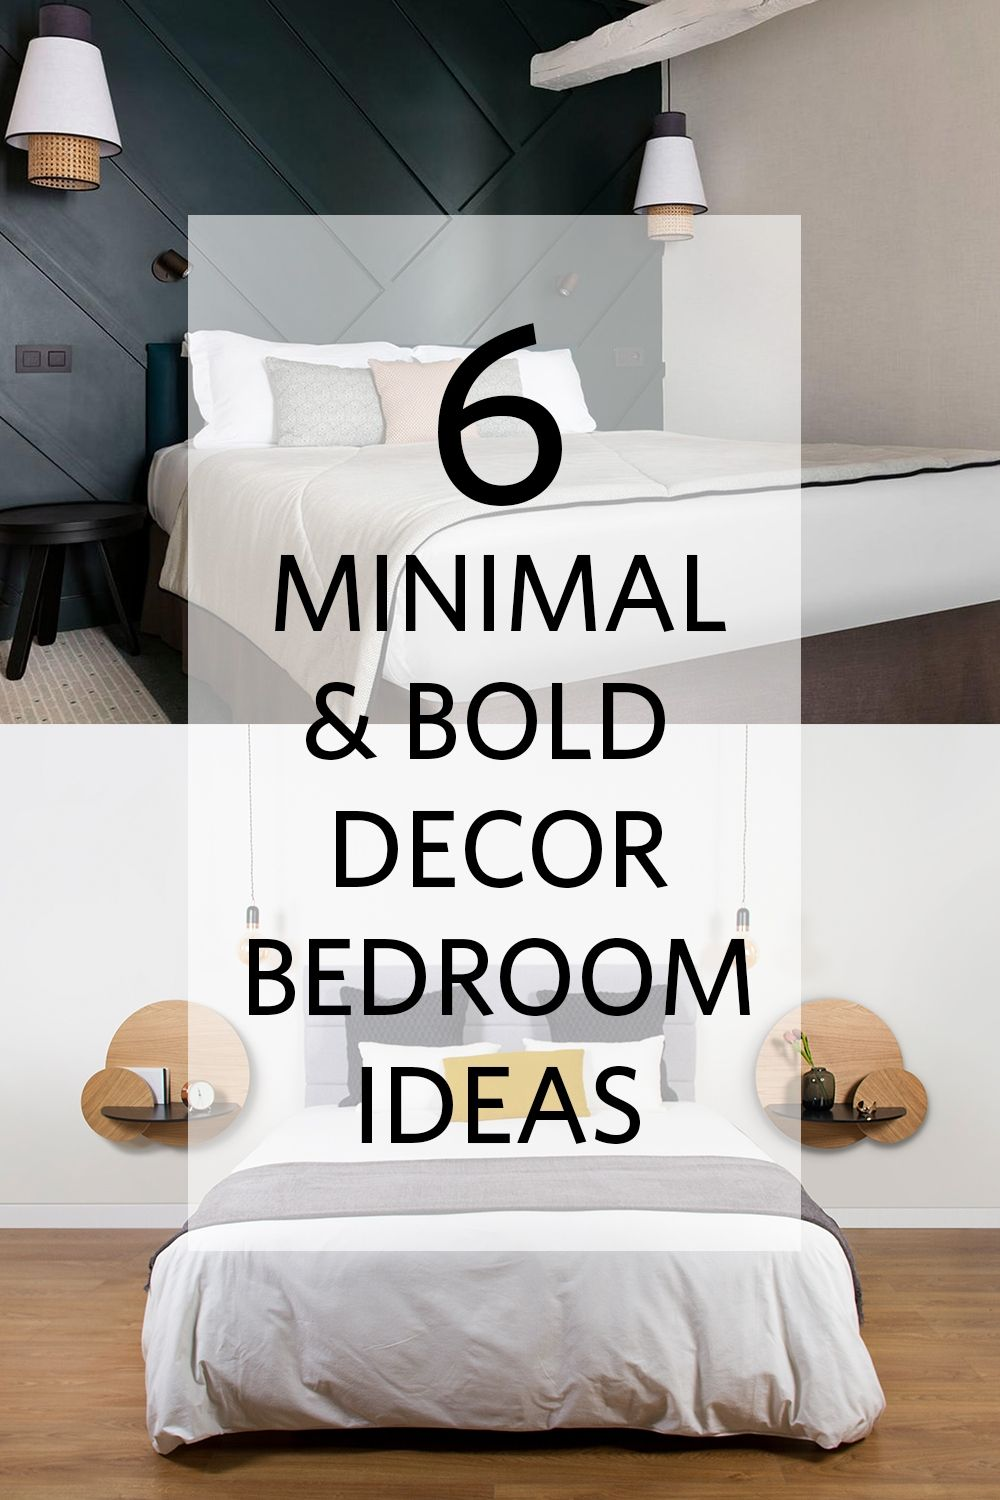 Spring is almost here! Time to re-decorate your loved bedroom :) #spring #decoration #minimaldecor #moderndecor #woodenfurniture